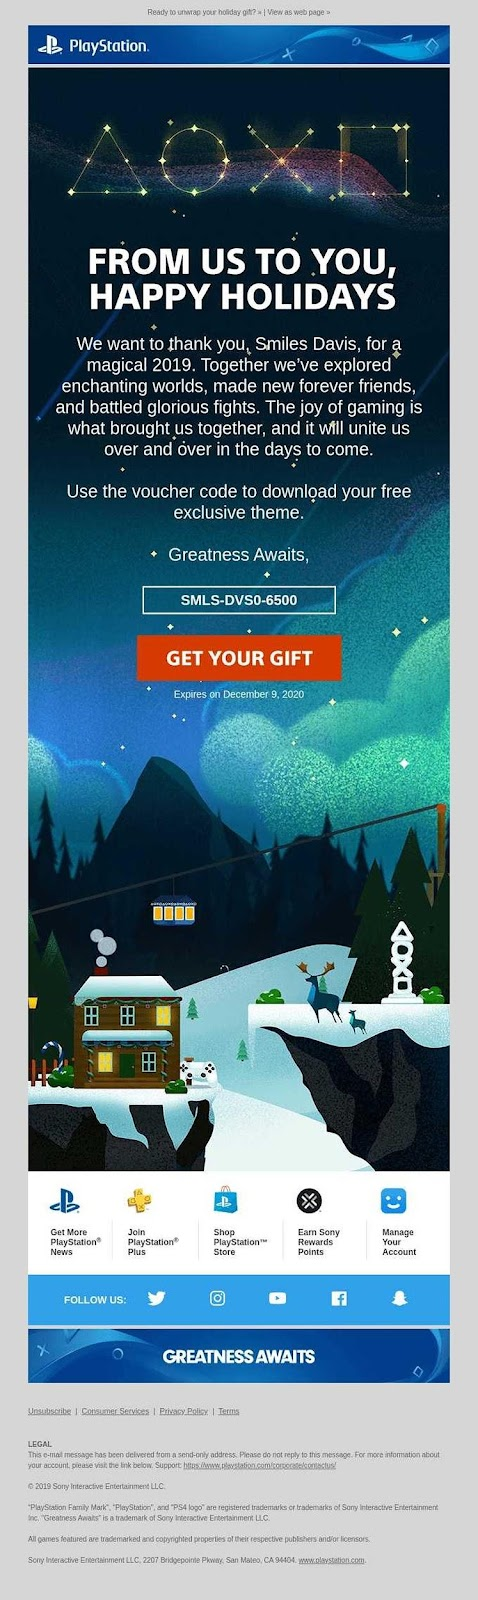 Playstation holiday email example